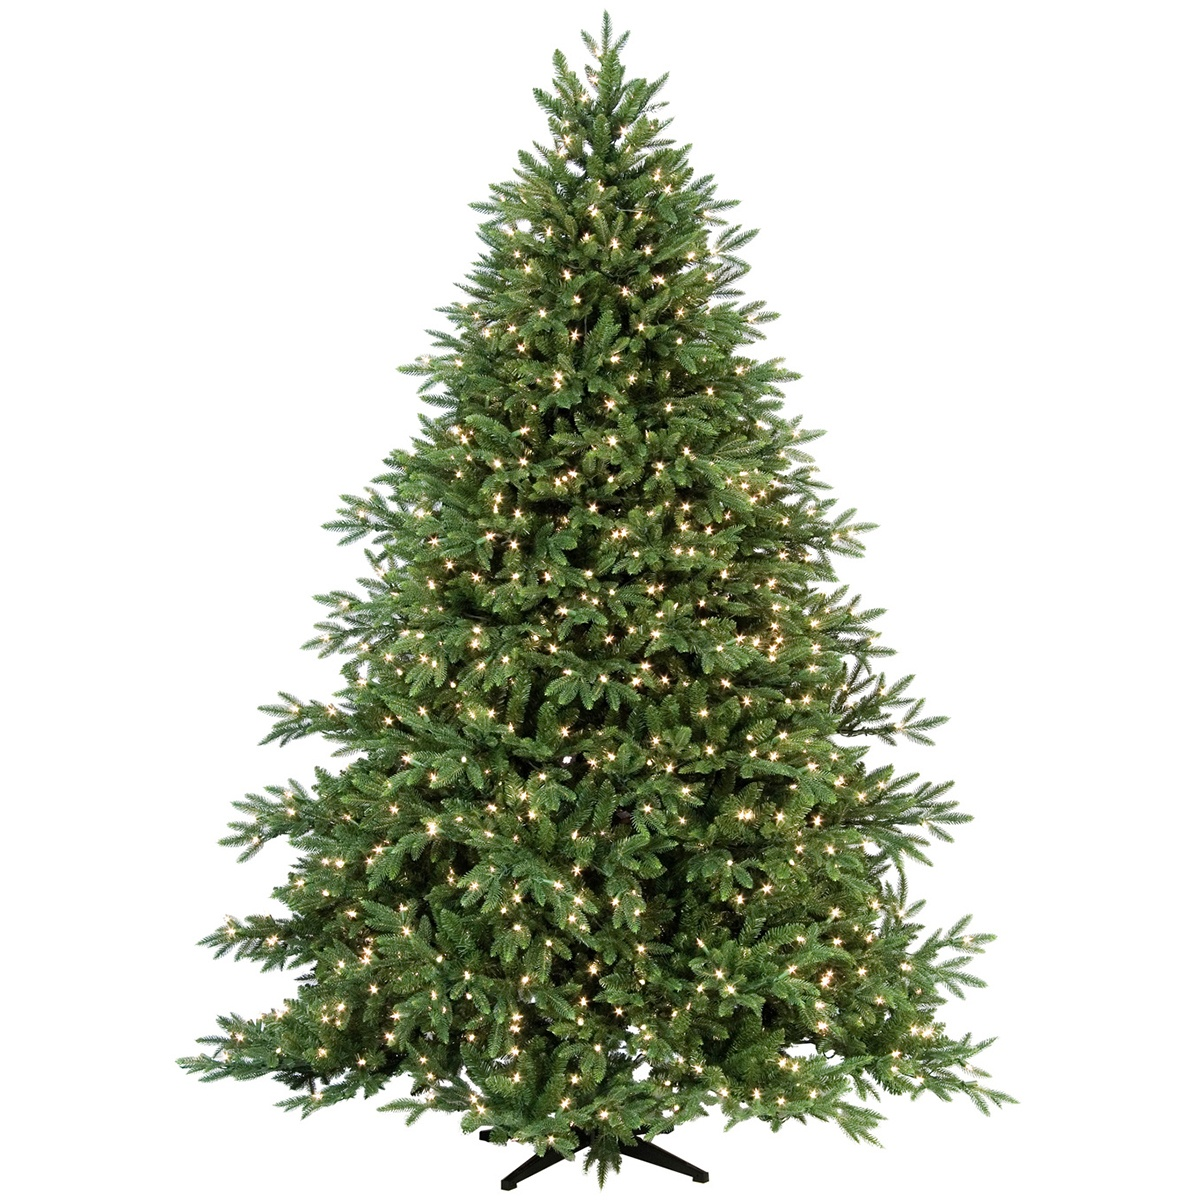 Carolina Fir Tree